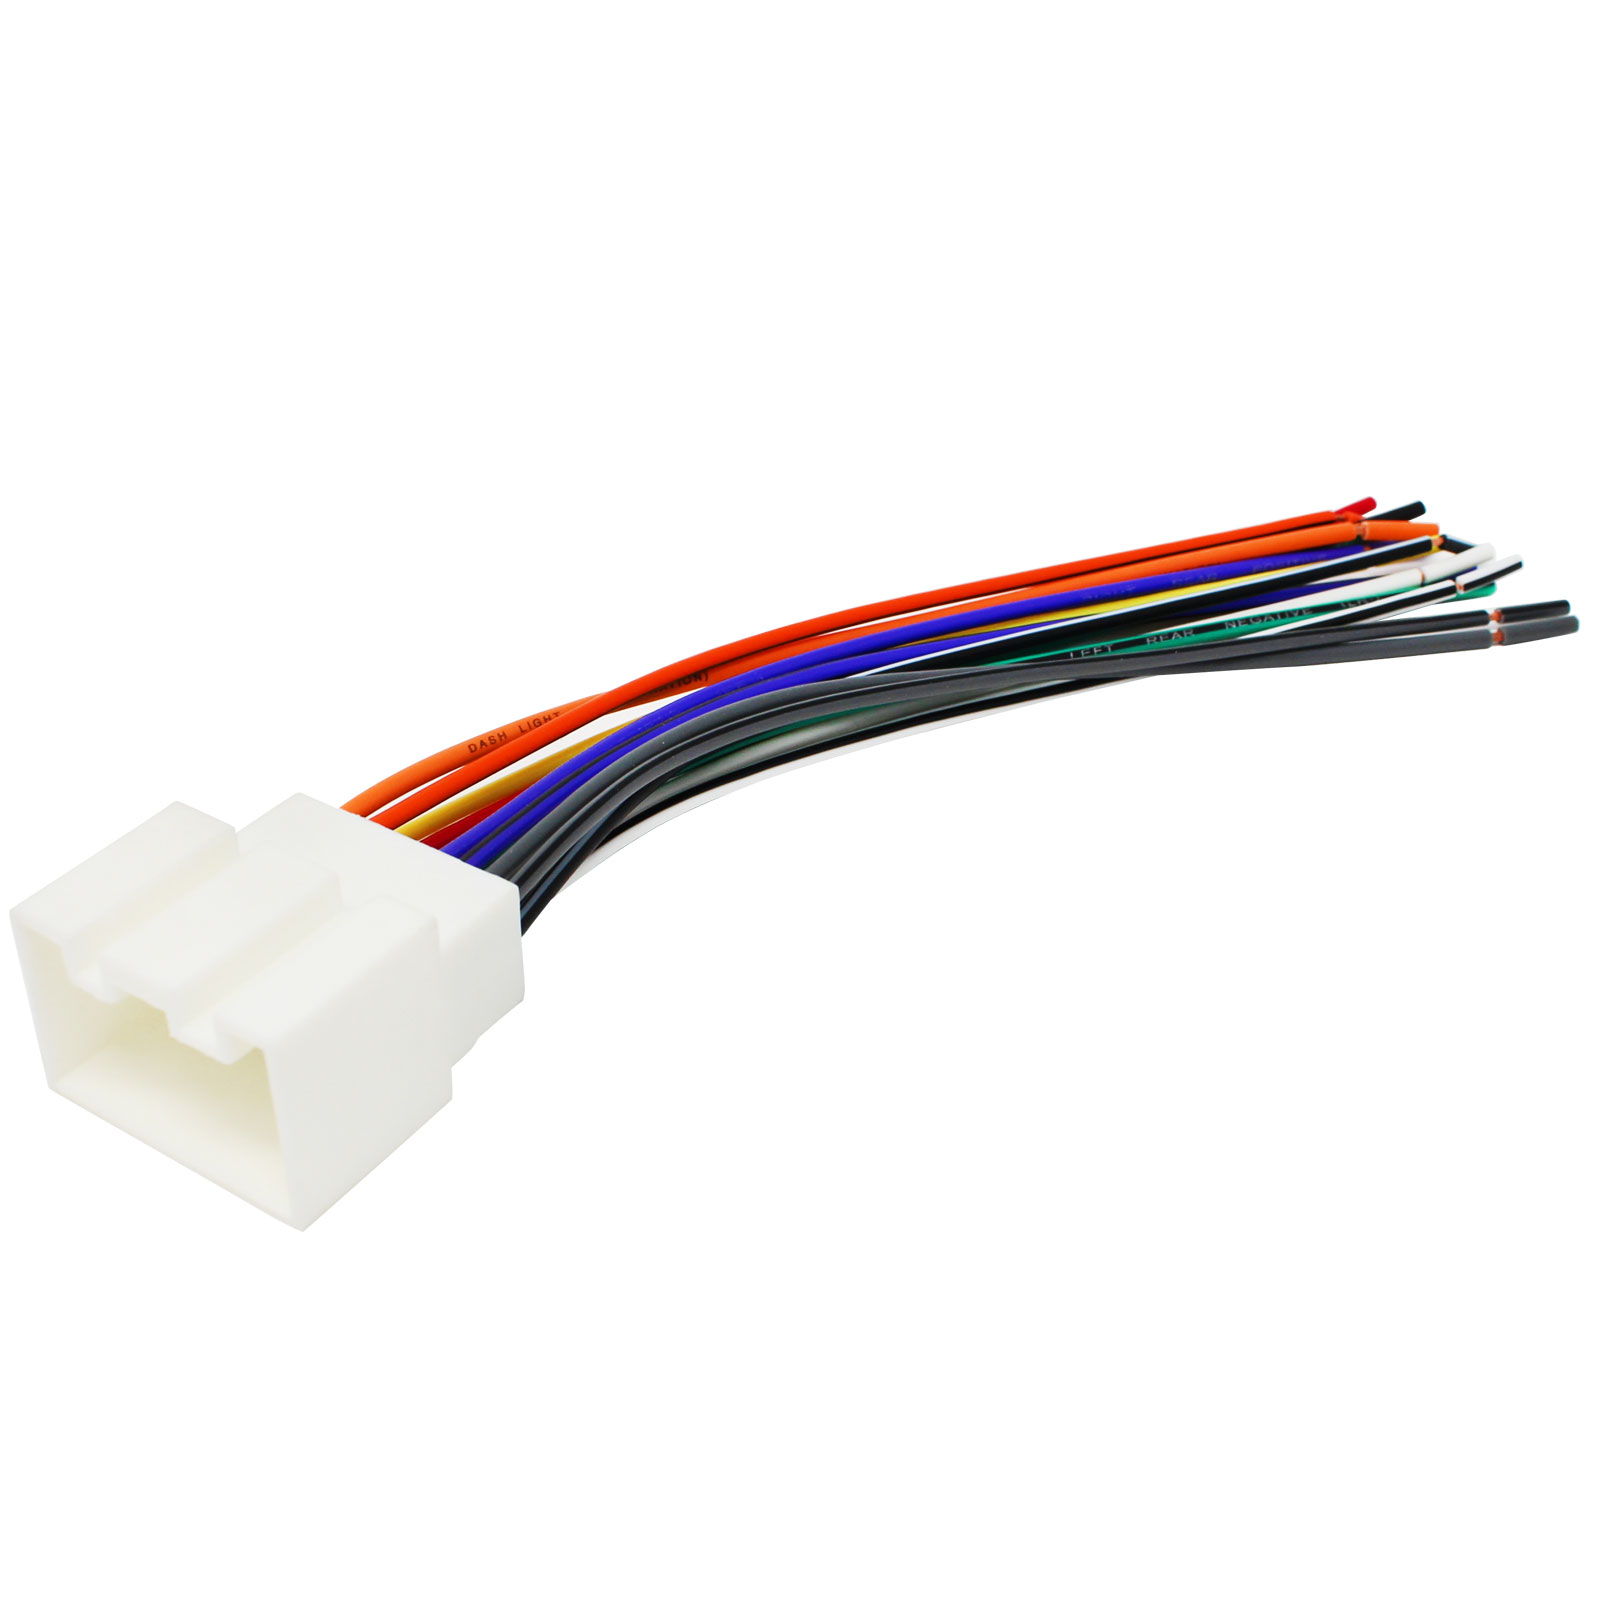 details about wiring harness for 2004 ford f 150 heritage xlt standard cab pickup 2 door 4 2l  2004 ford f 150 wire harness #6